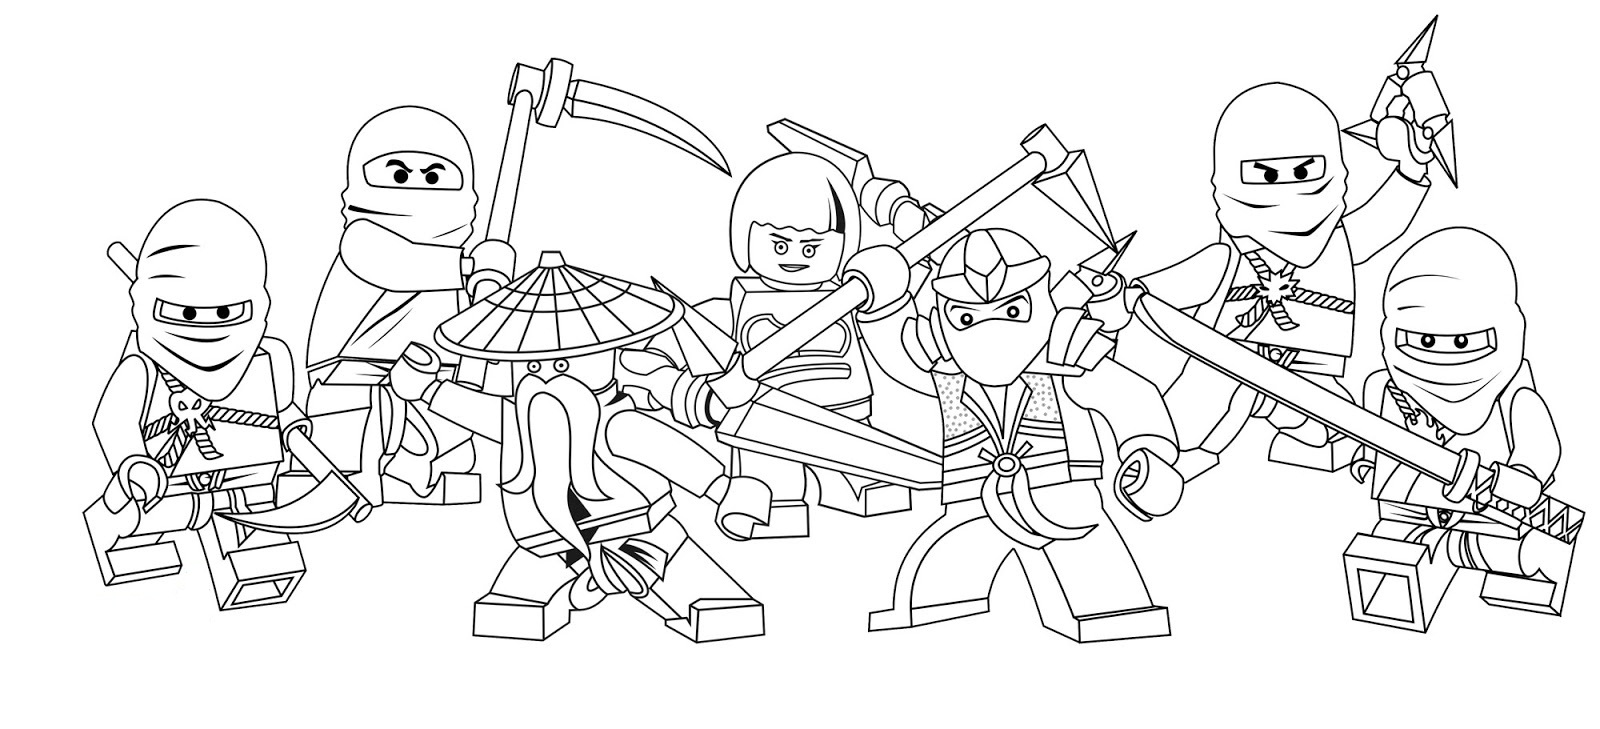 ninjago coloring pages printable - Colouring Pages To Print